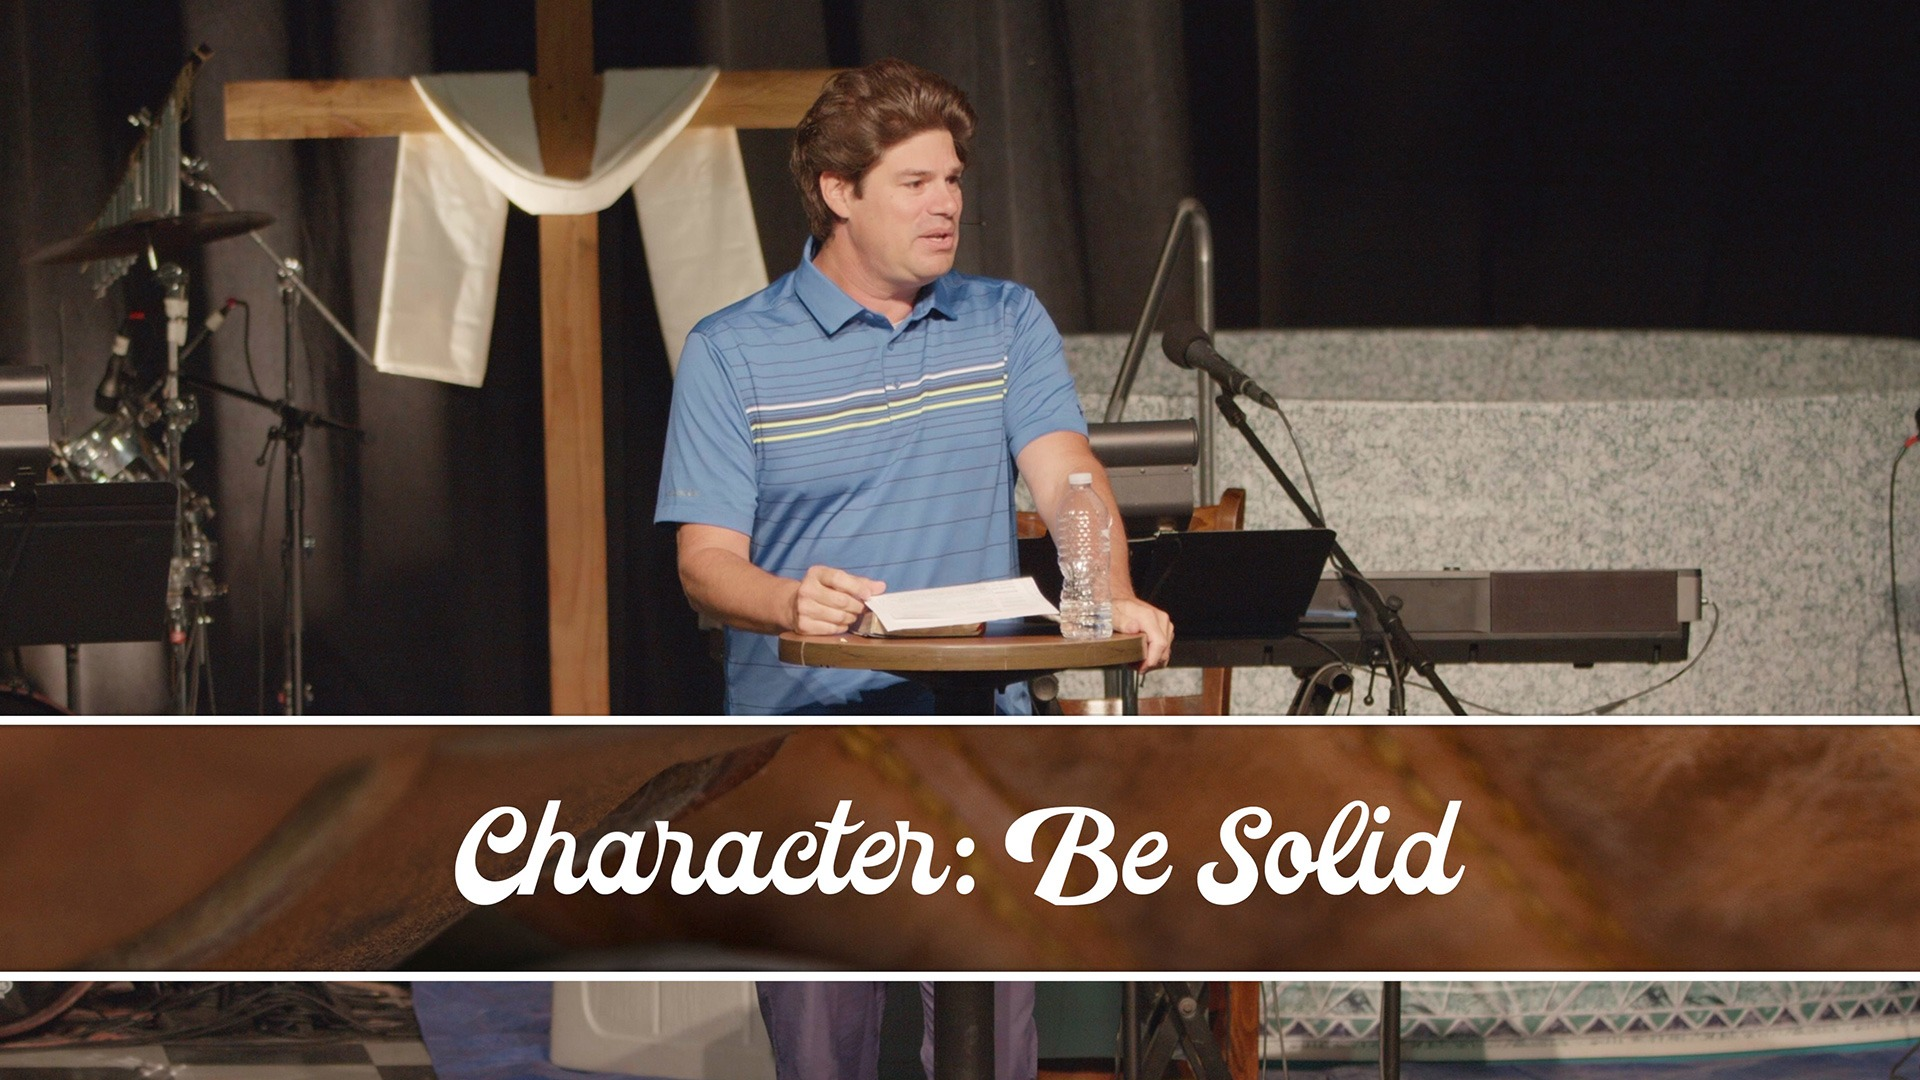 Character: Be Solid Image